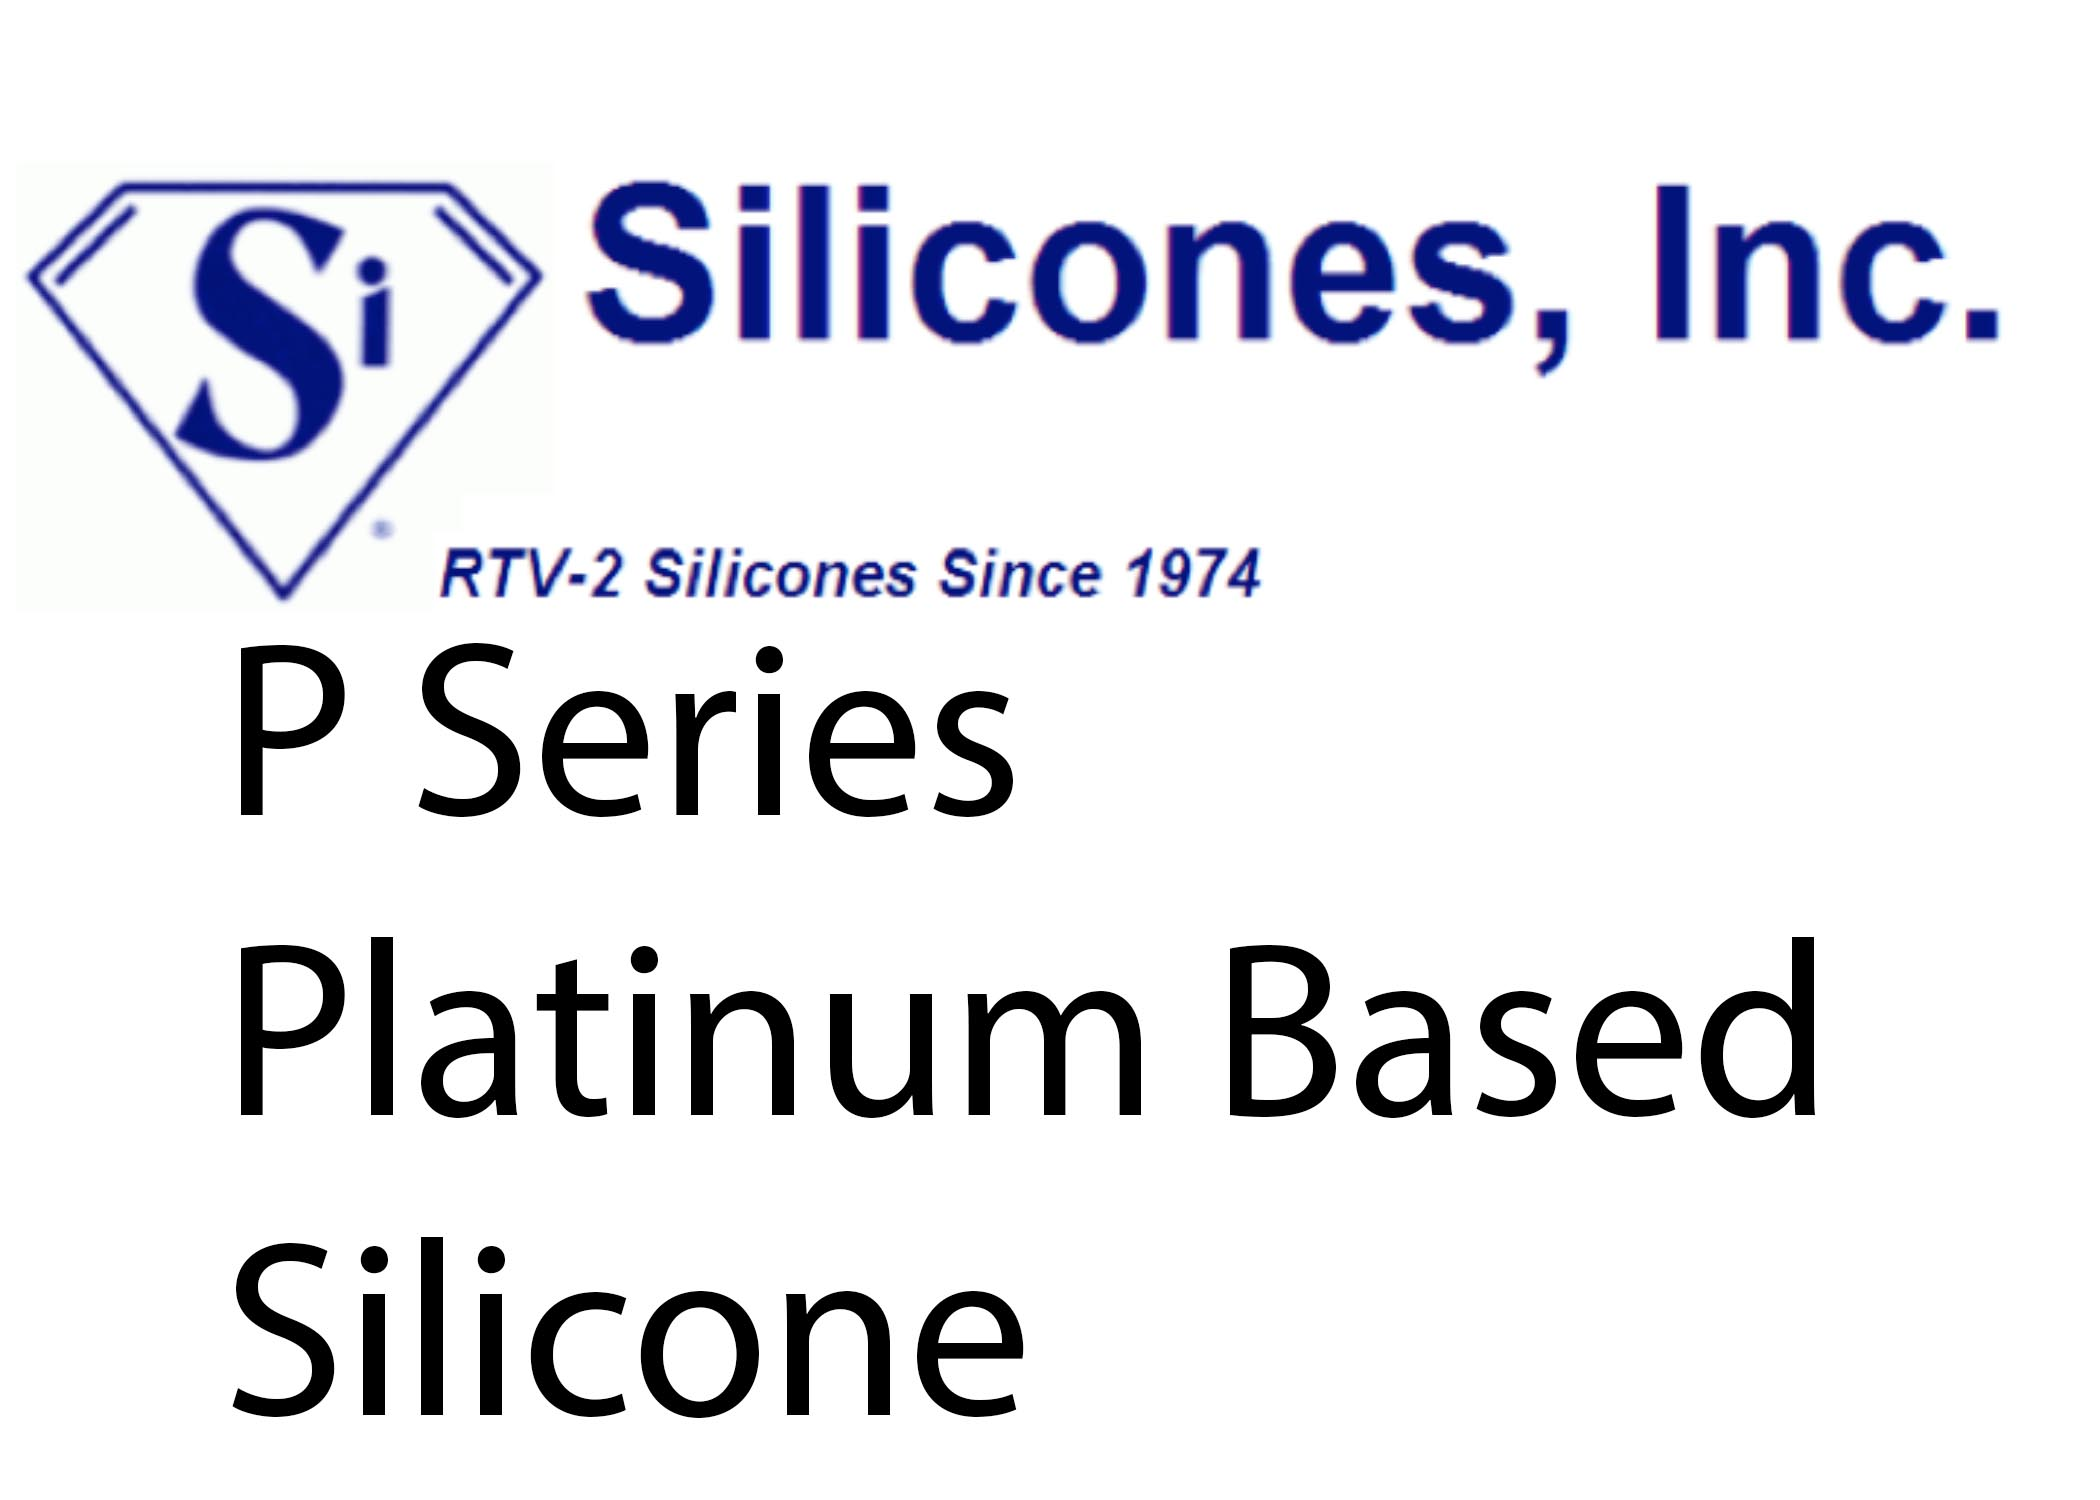 P Series Platinum Based Silicone